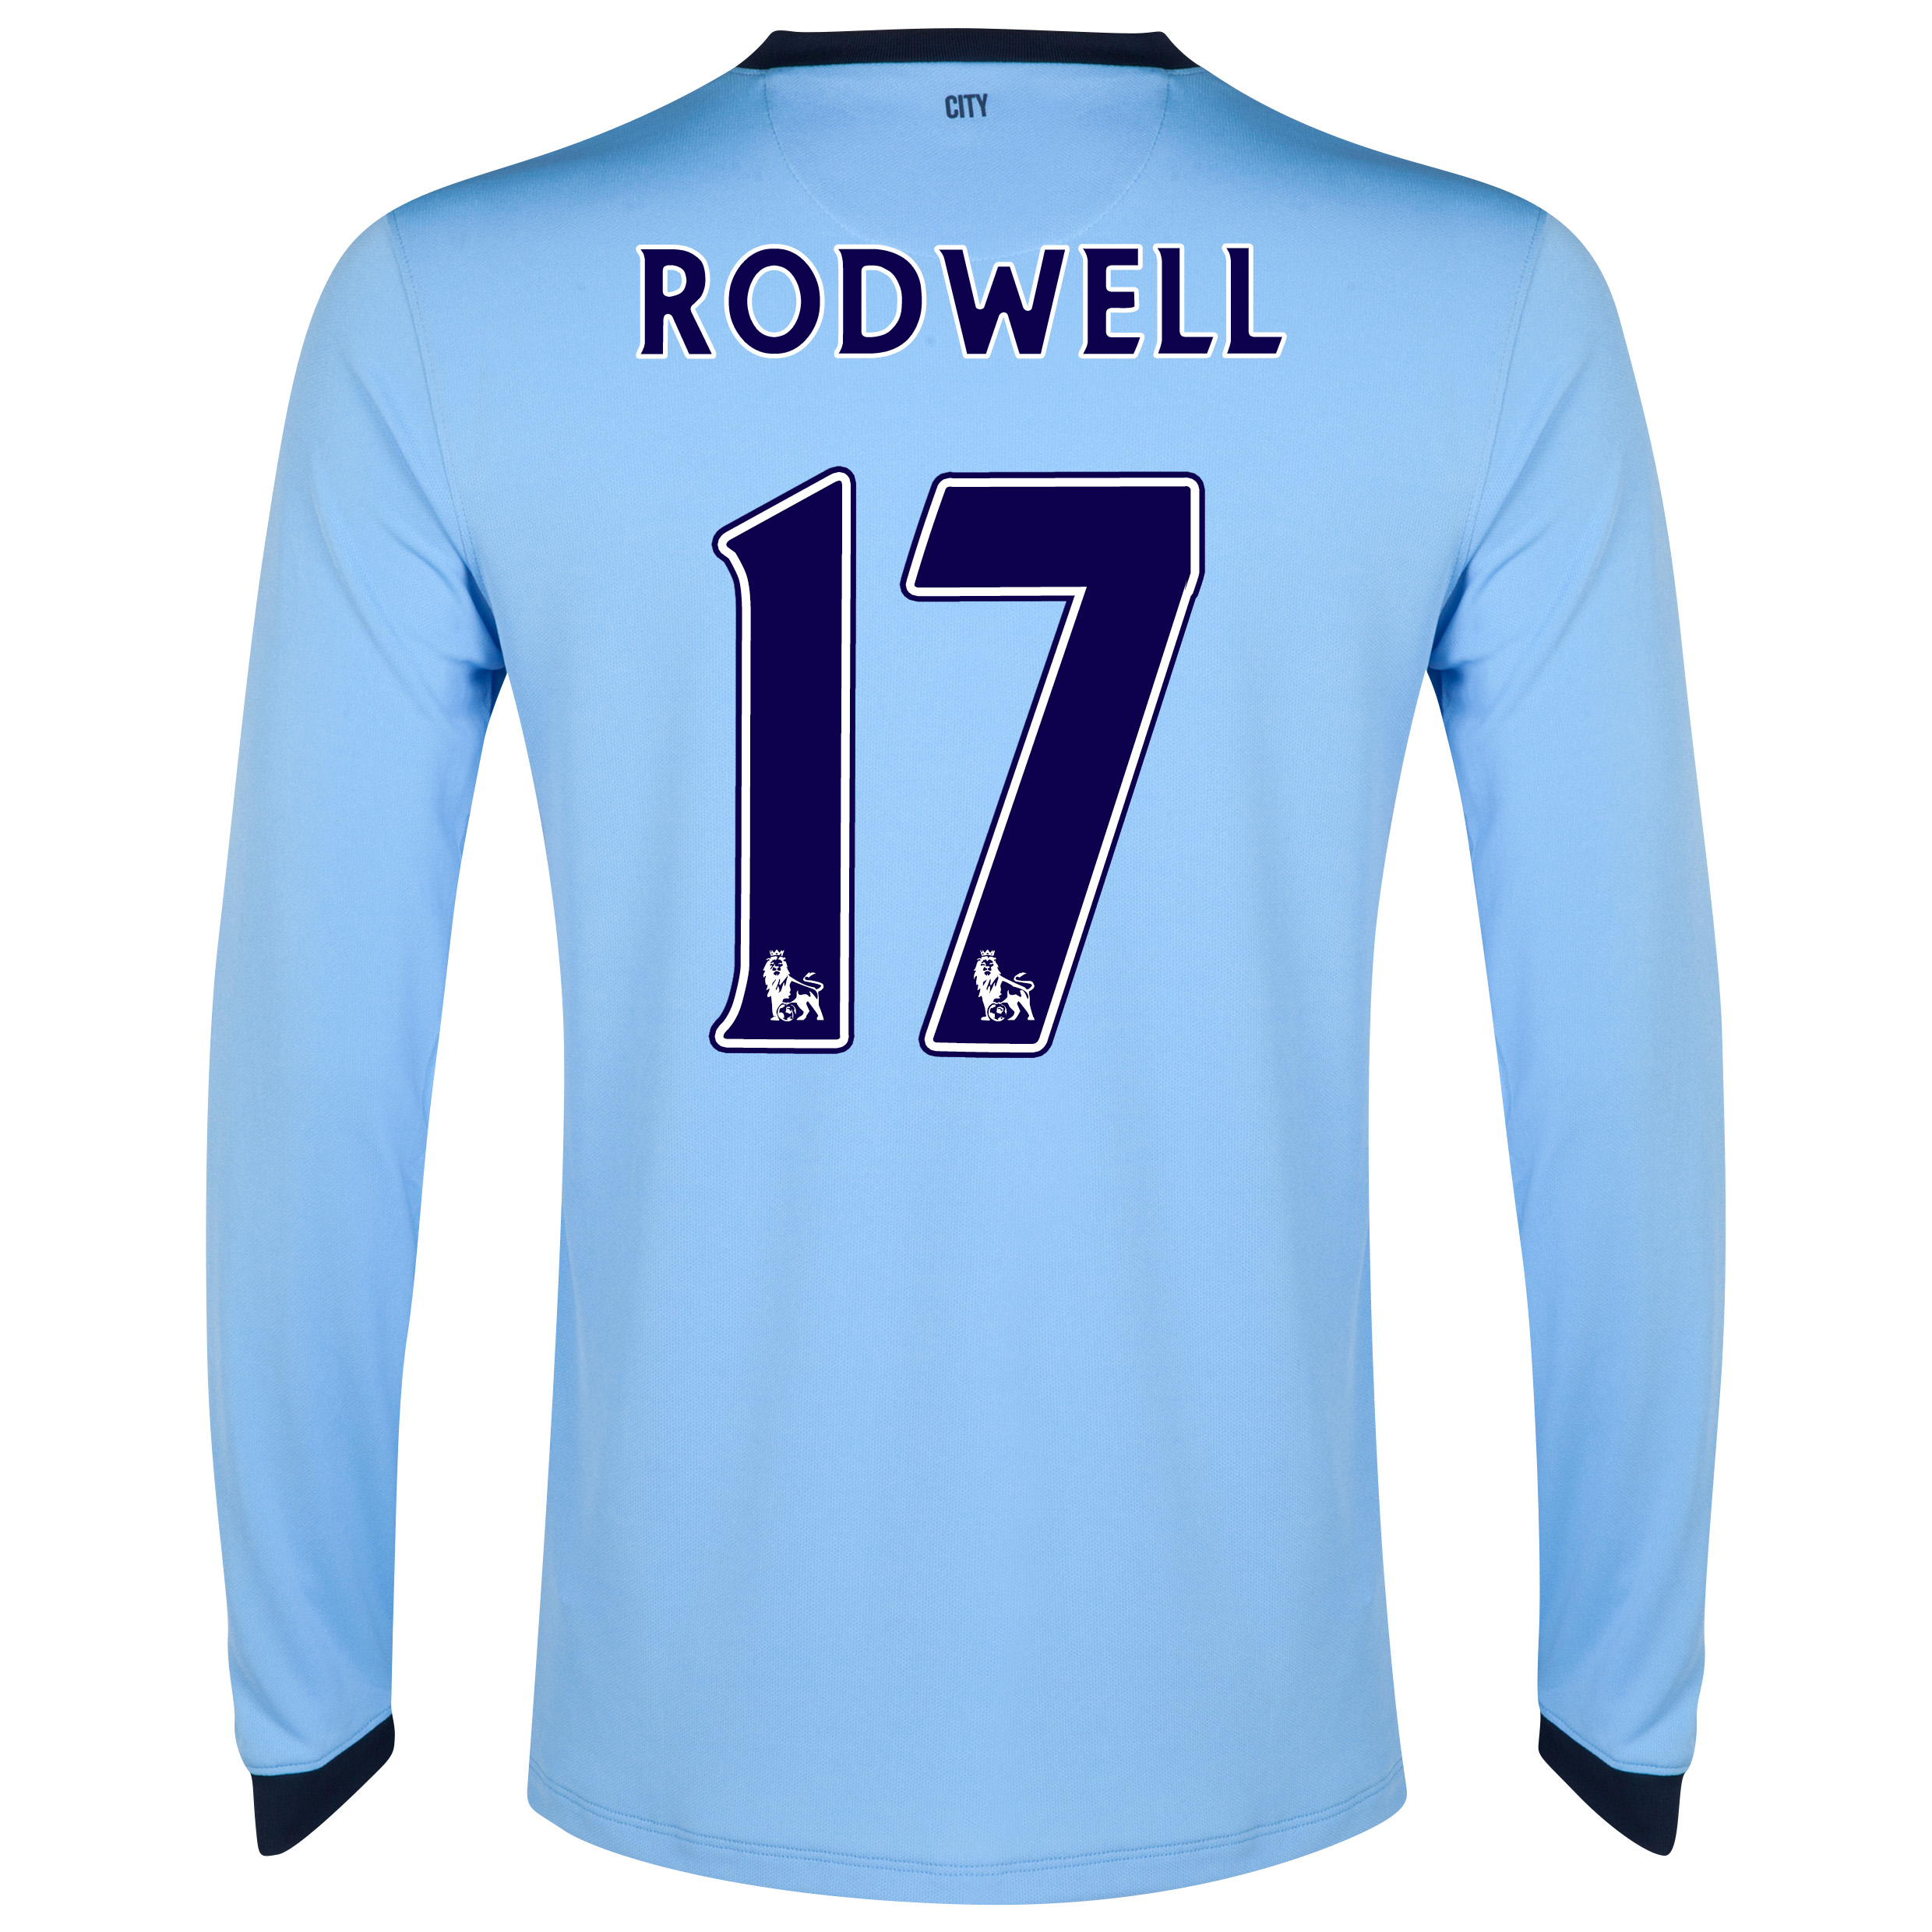 Manchester City Home Shirt 2014/15 - Long Sleeve Sky Blue with Rodwell 17 printing